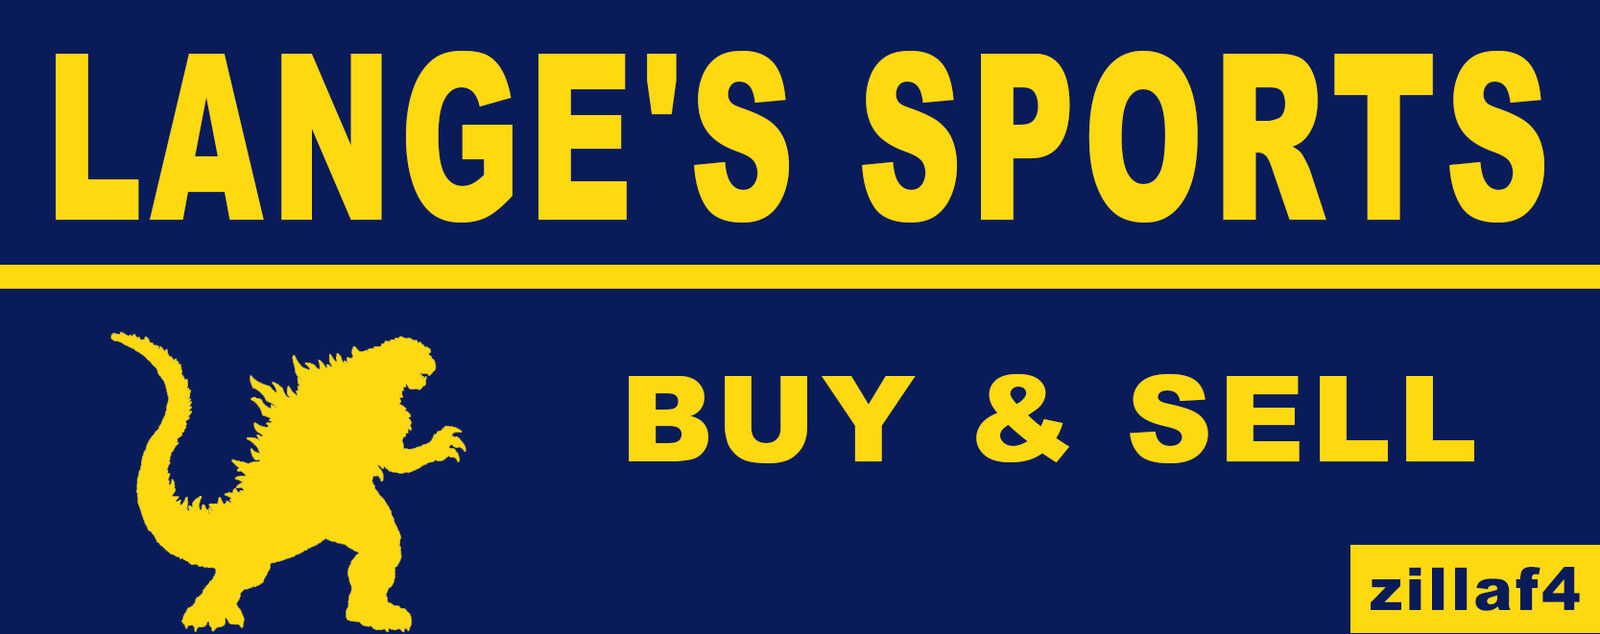 Lange's Comics and Supplies